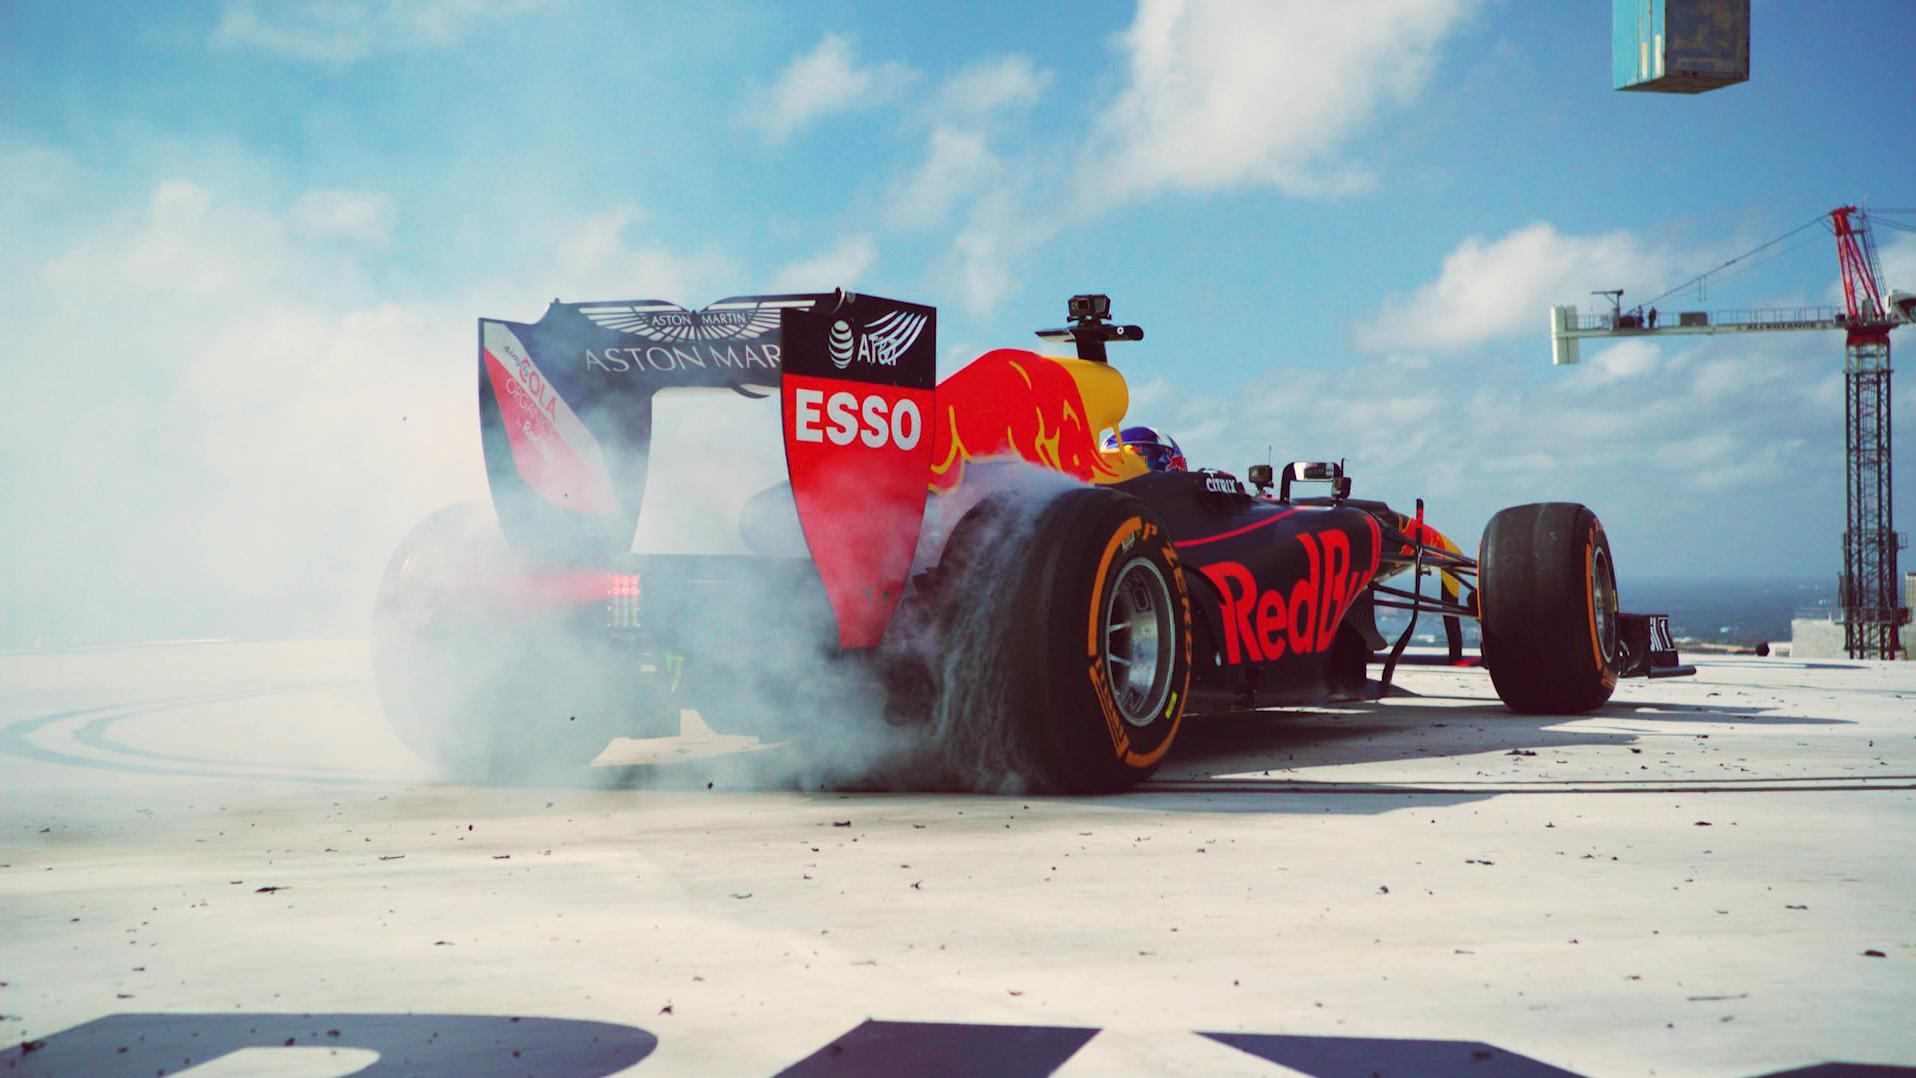 Red Bull F Team Reaches New Heights With Skysc R Burnout